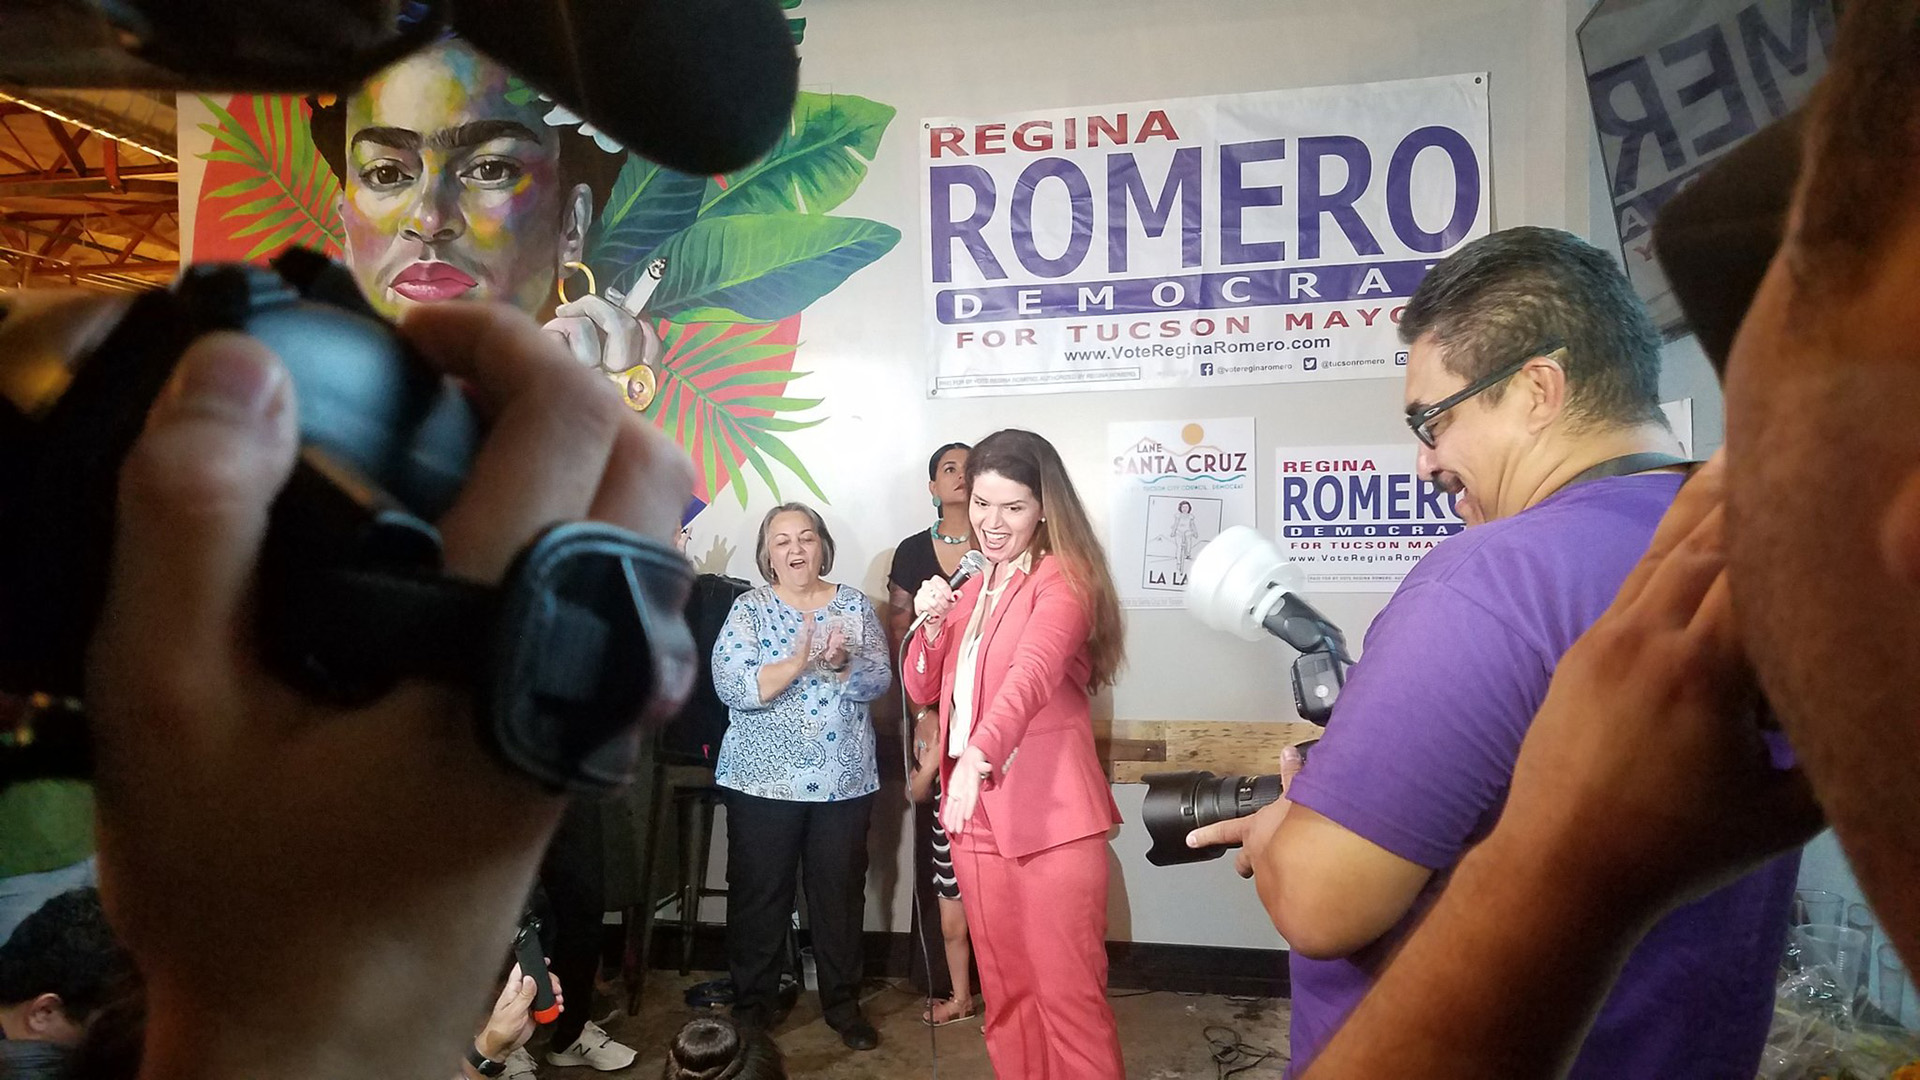 Tucson City Councilwoman Regina Romero claims victory in the race for the Democratic Party nomination for Tucson mayor, Aug. 27, 2019.